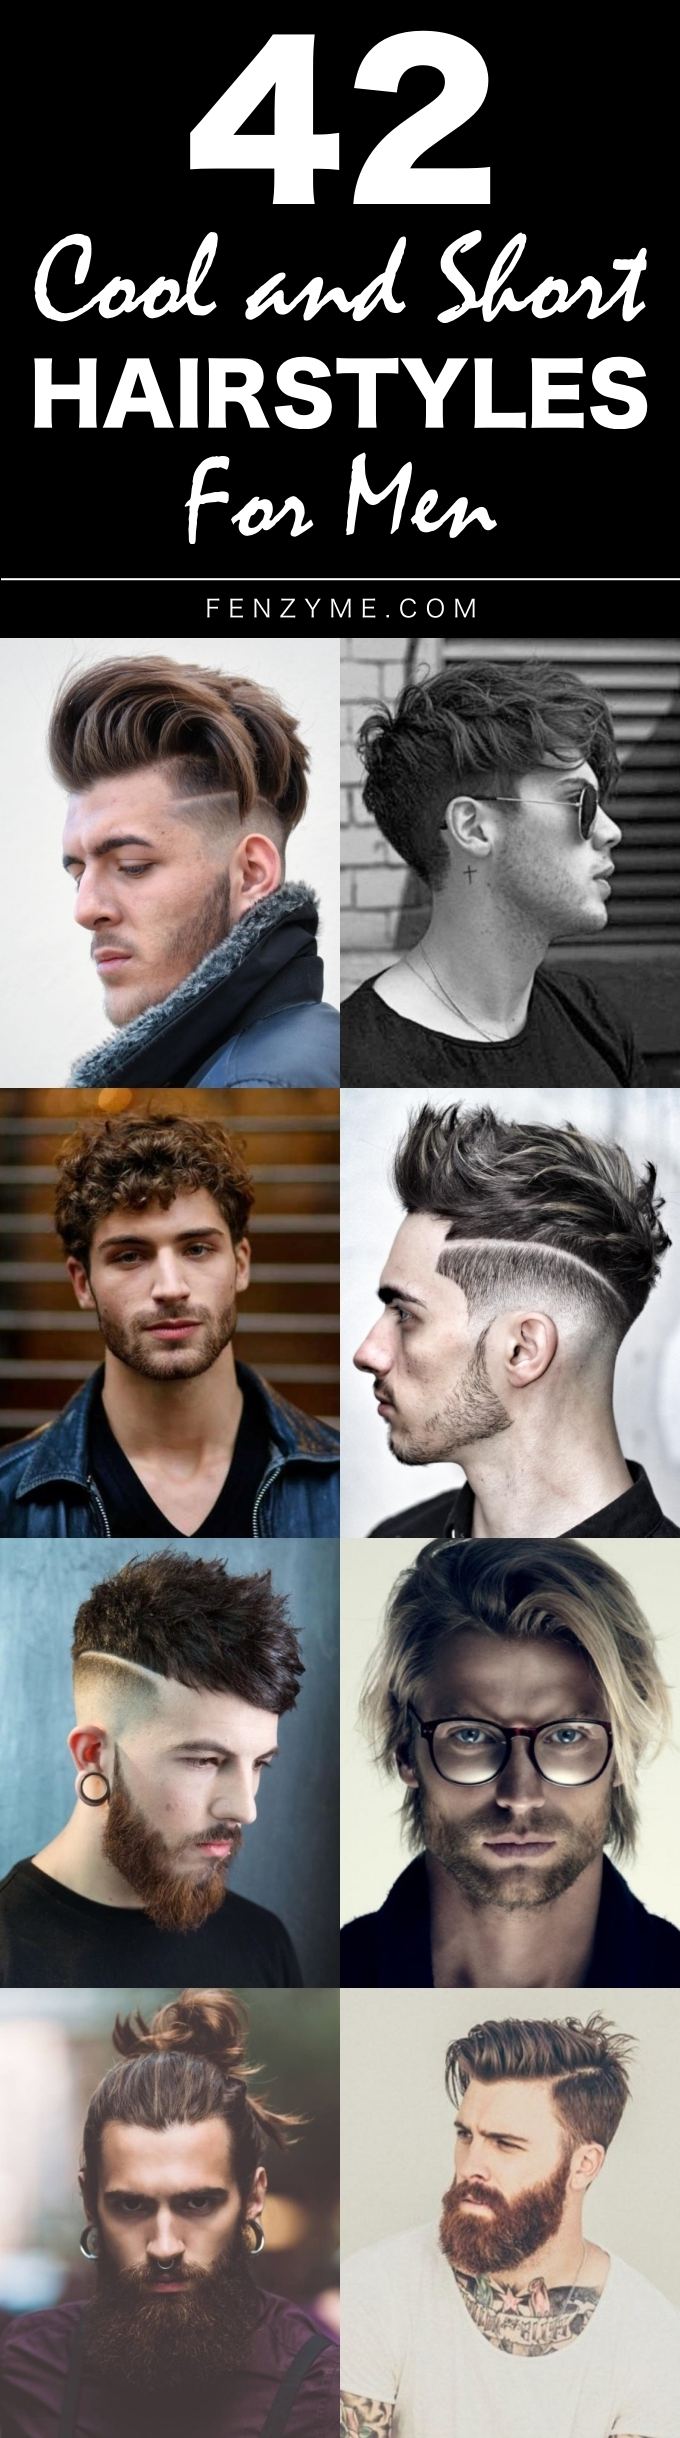 Cool and Short Hairstyles for men